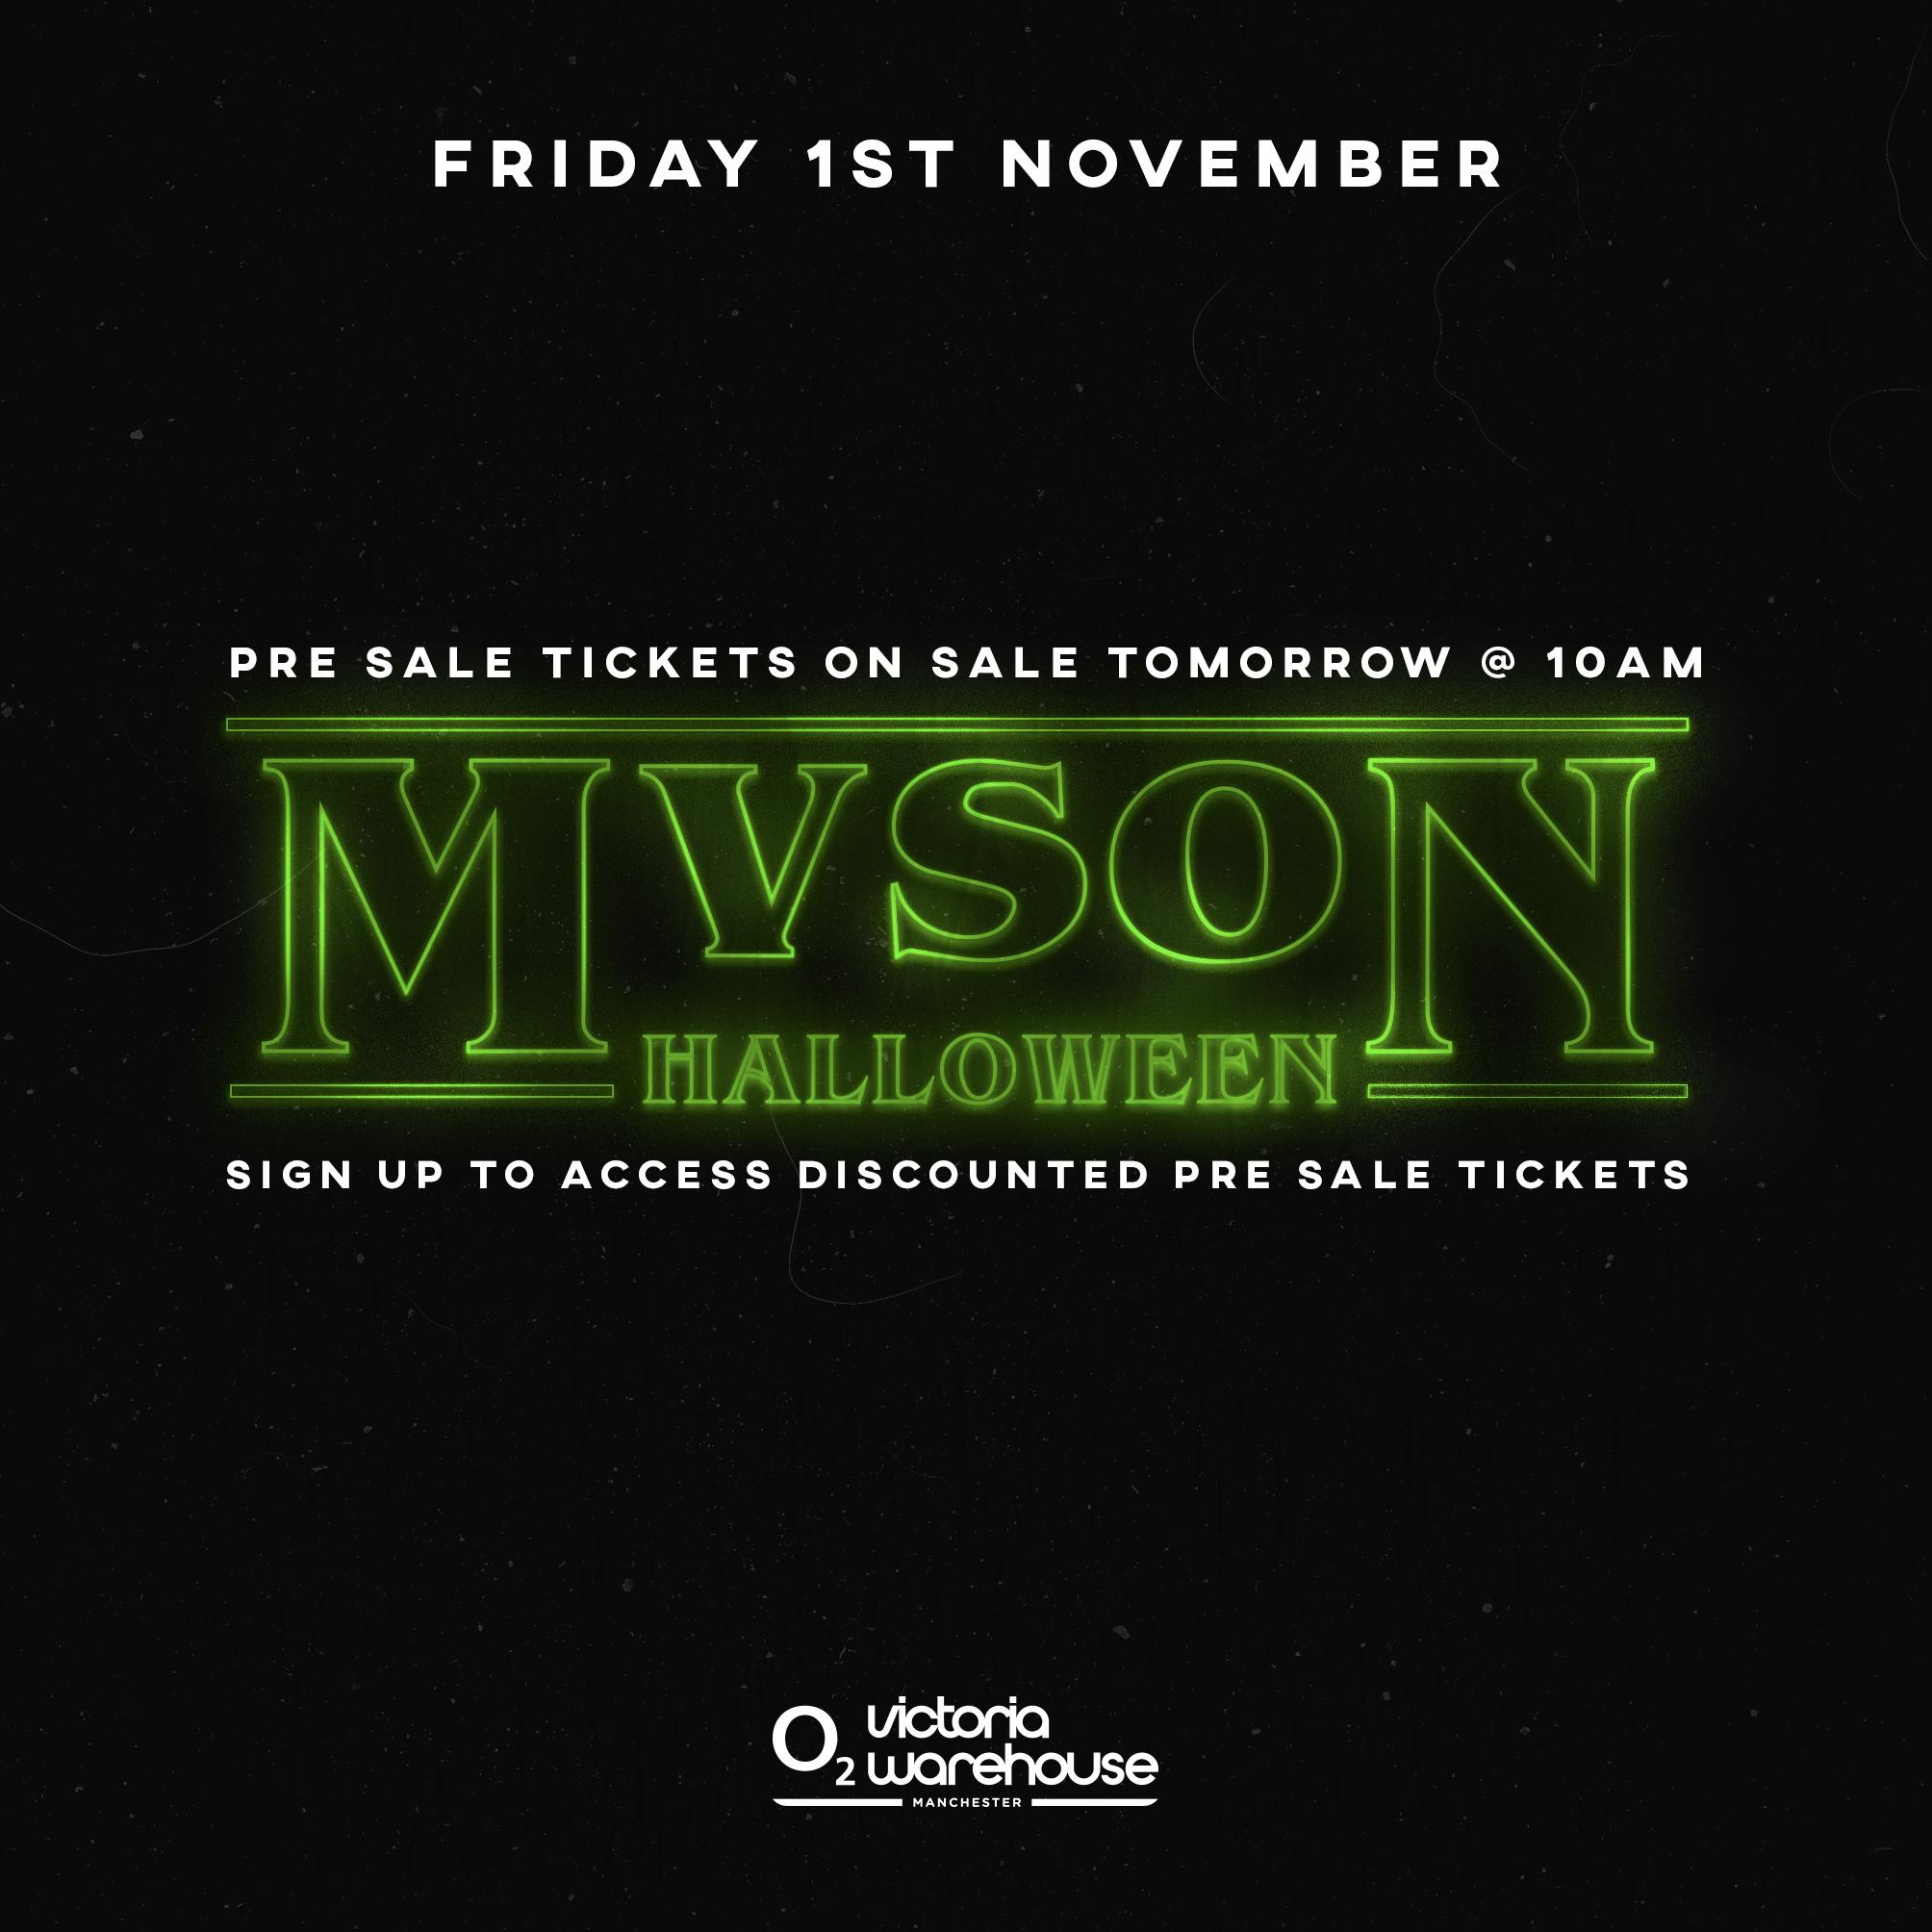 MVSON Presents A Nightmare at Victoria Warehouse Tickets